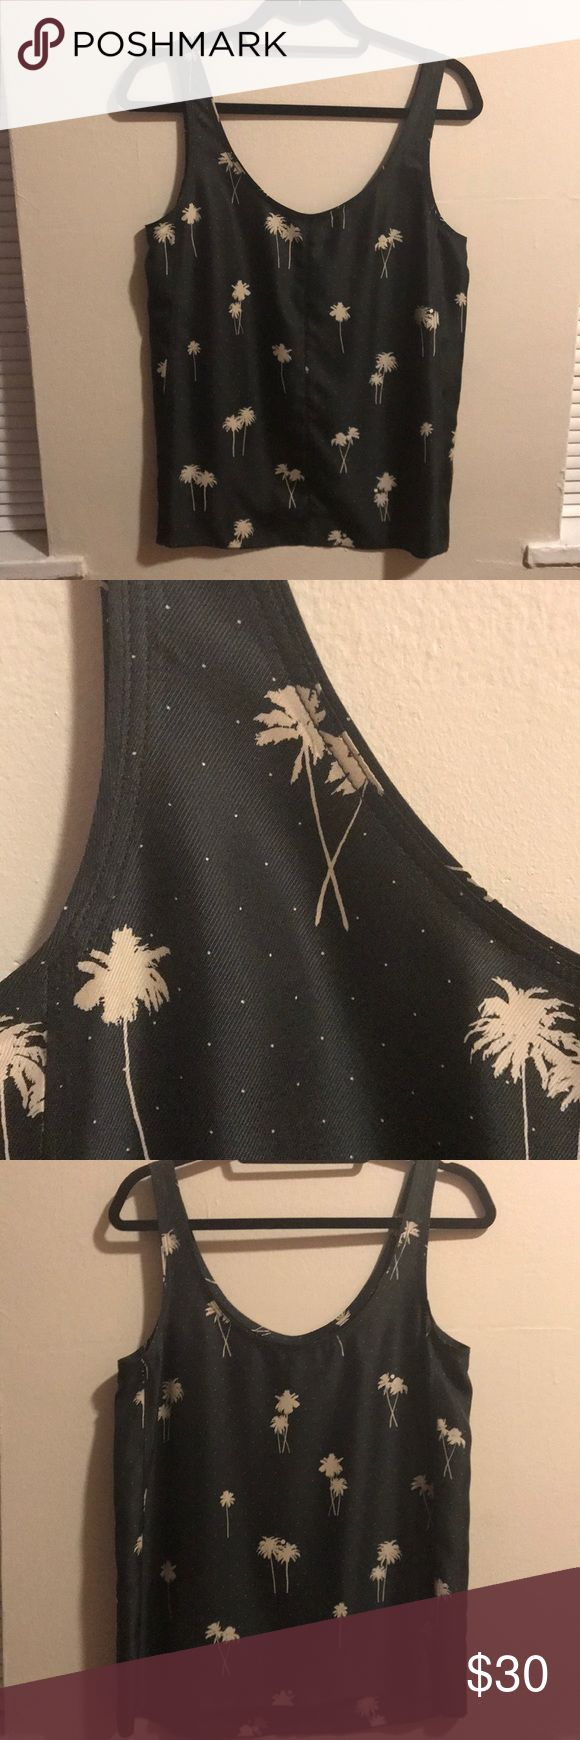 Rag & bone palm tree print silk tank Never worn (tags removed and dry cleaned) 100% silk tank from rag & bone. Color is a dark navy/gray, palm trees are beige. Love this but wearing with my palm tree tattoo is a bit much! rag & bone Tops Tank Tops